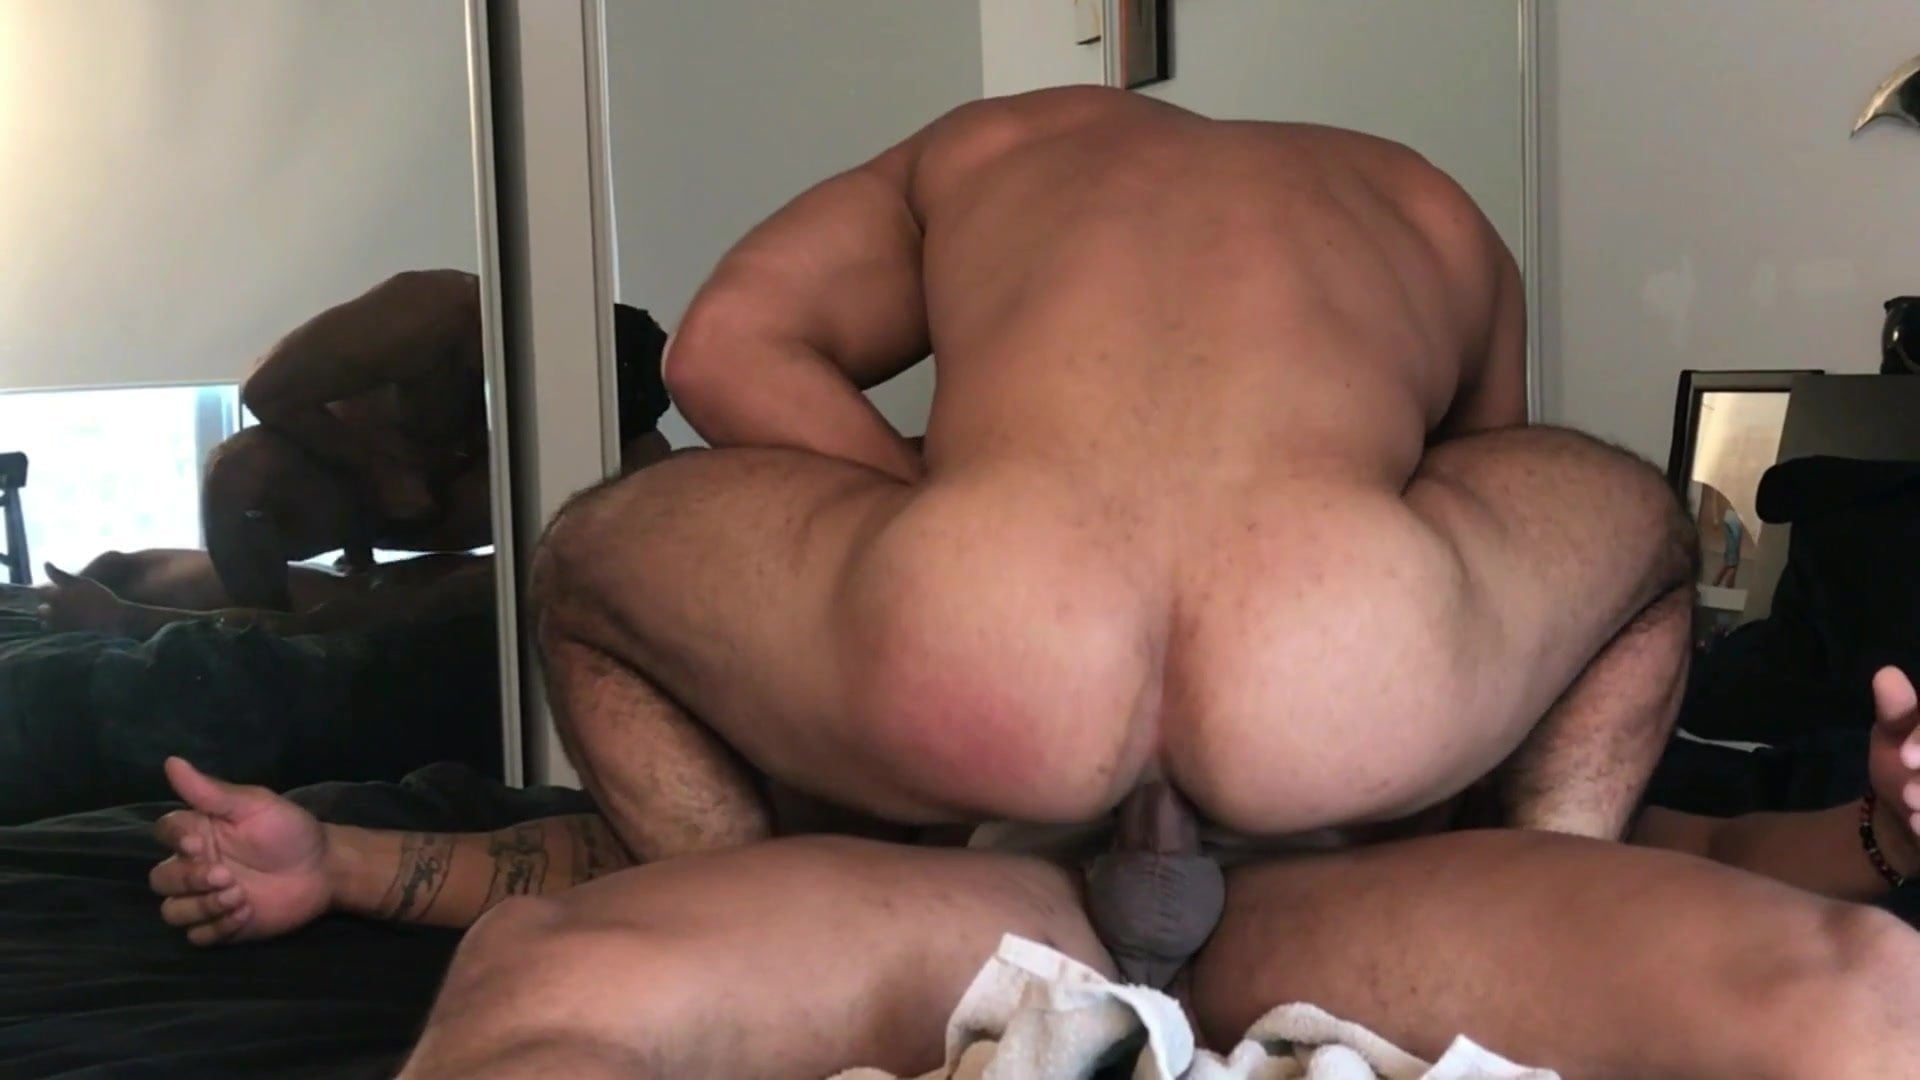 I Fucked Him Like A Bull, Free Iphone Gay Free Hd Porn Ad-1820